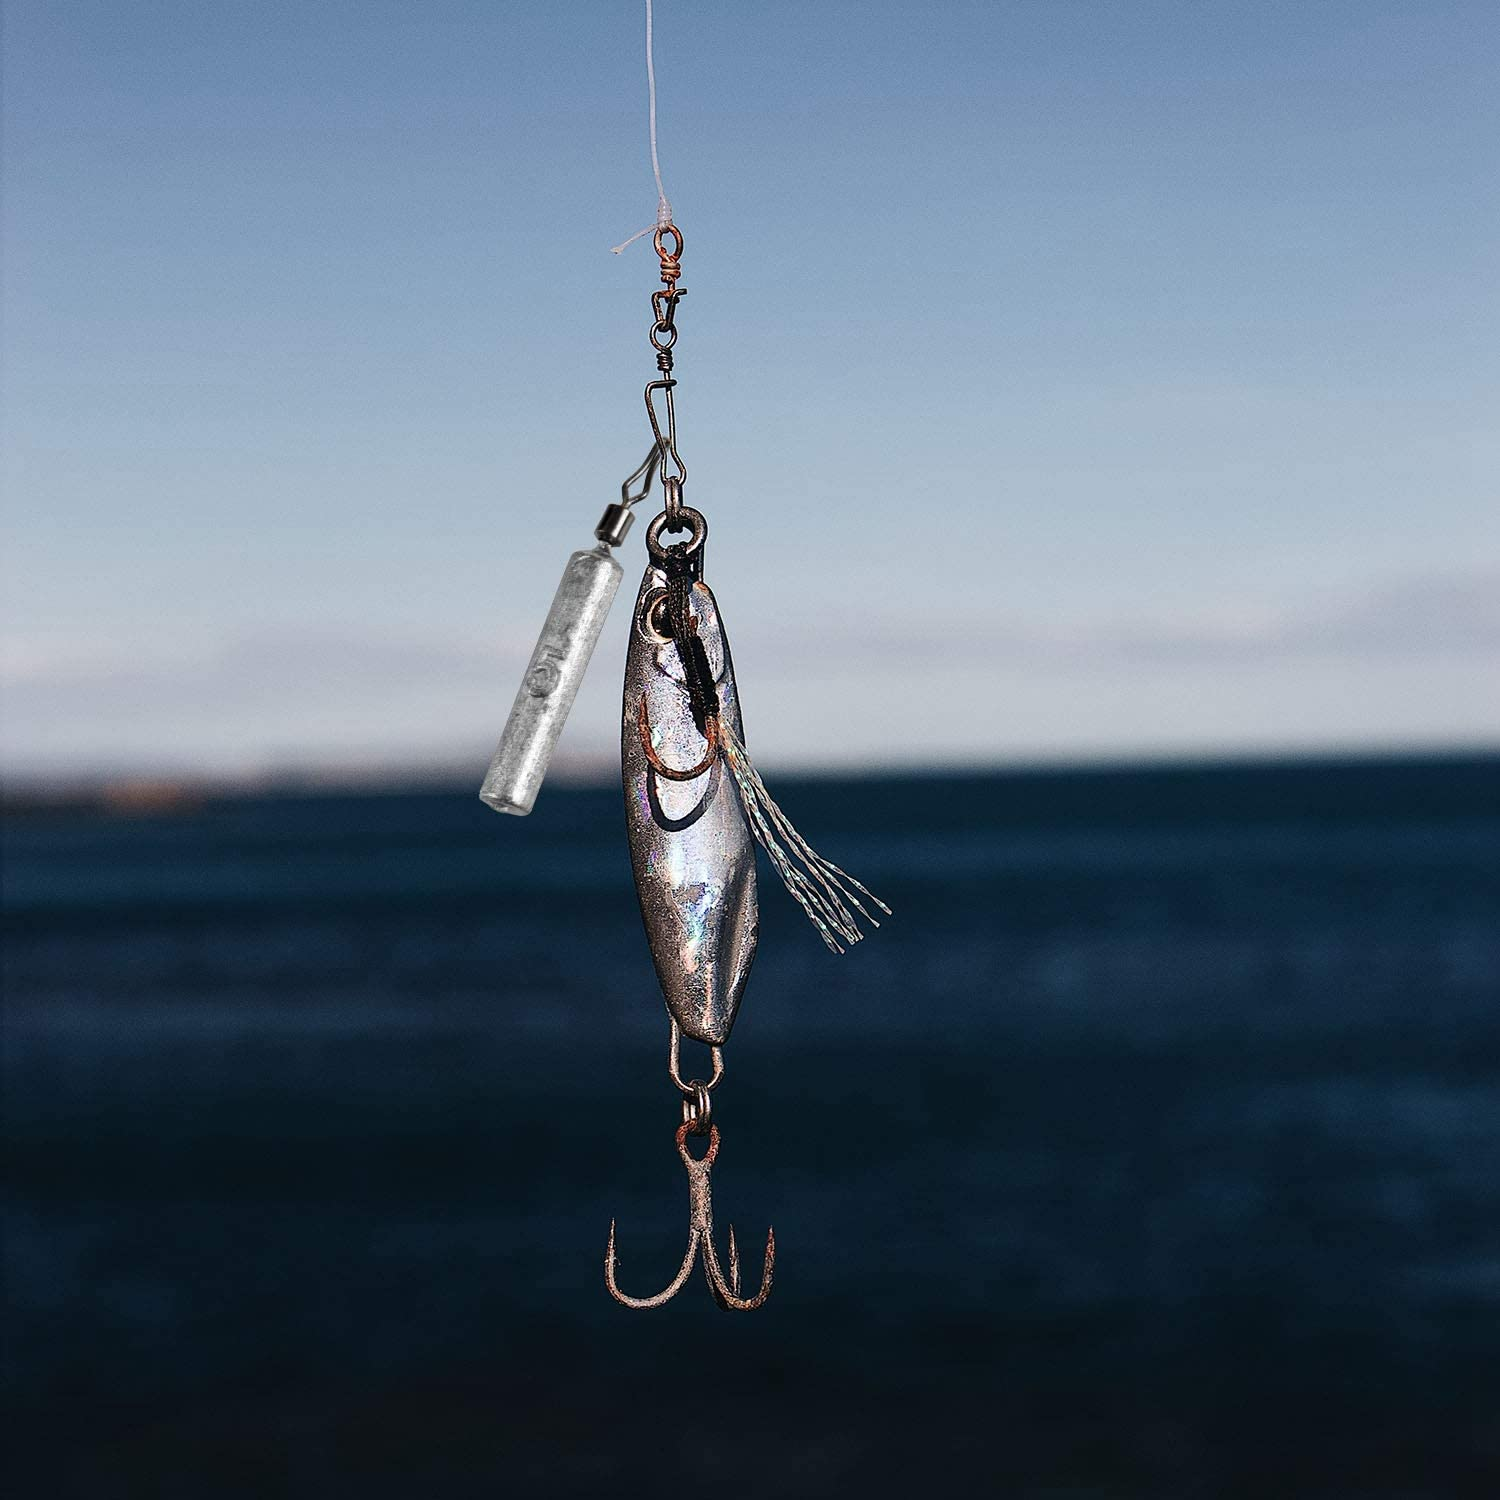 2 LB SEA FISHING LEADS WEIGHT FOR FISHING FROM THE BOAT TACKLE UNIVERSAL